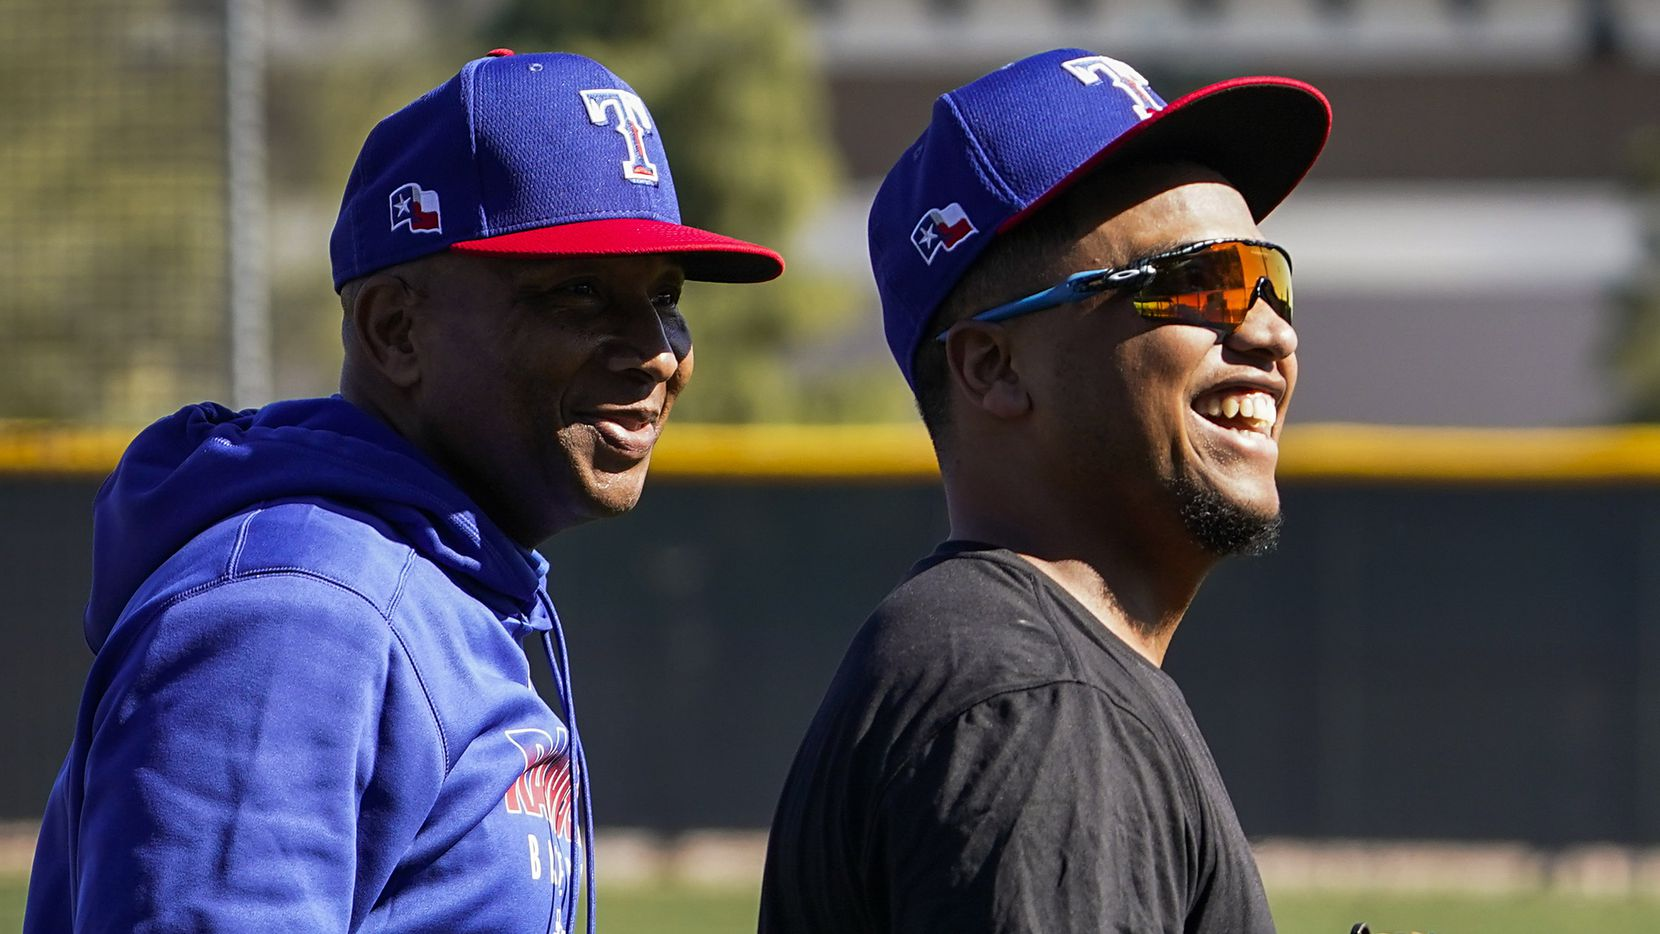 Texas Rangers outfielder Willie Calhoun (right) laughs with third base coach Tony Beasley during the first spring training workout for pitchers and catchers at the team's training facility on Wednesday, Feb. 12, 2020, in Surprise, Ariz.